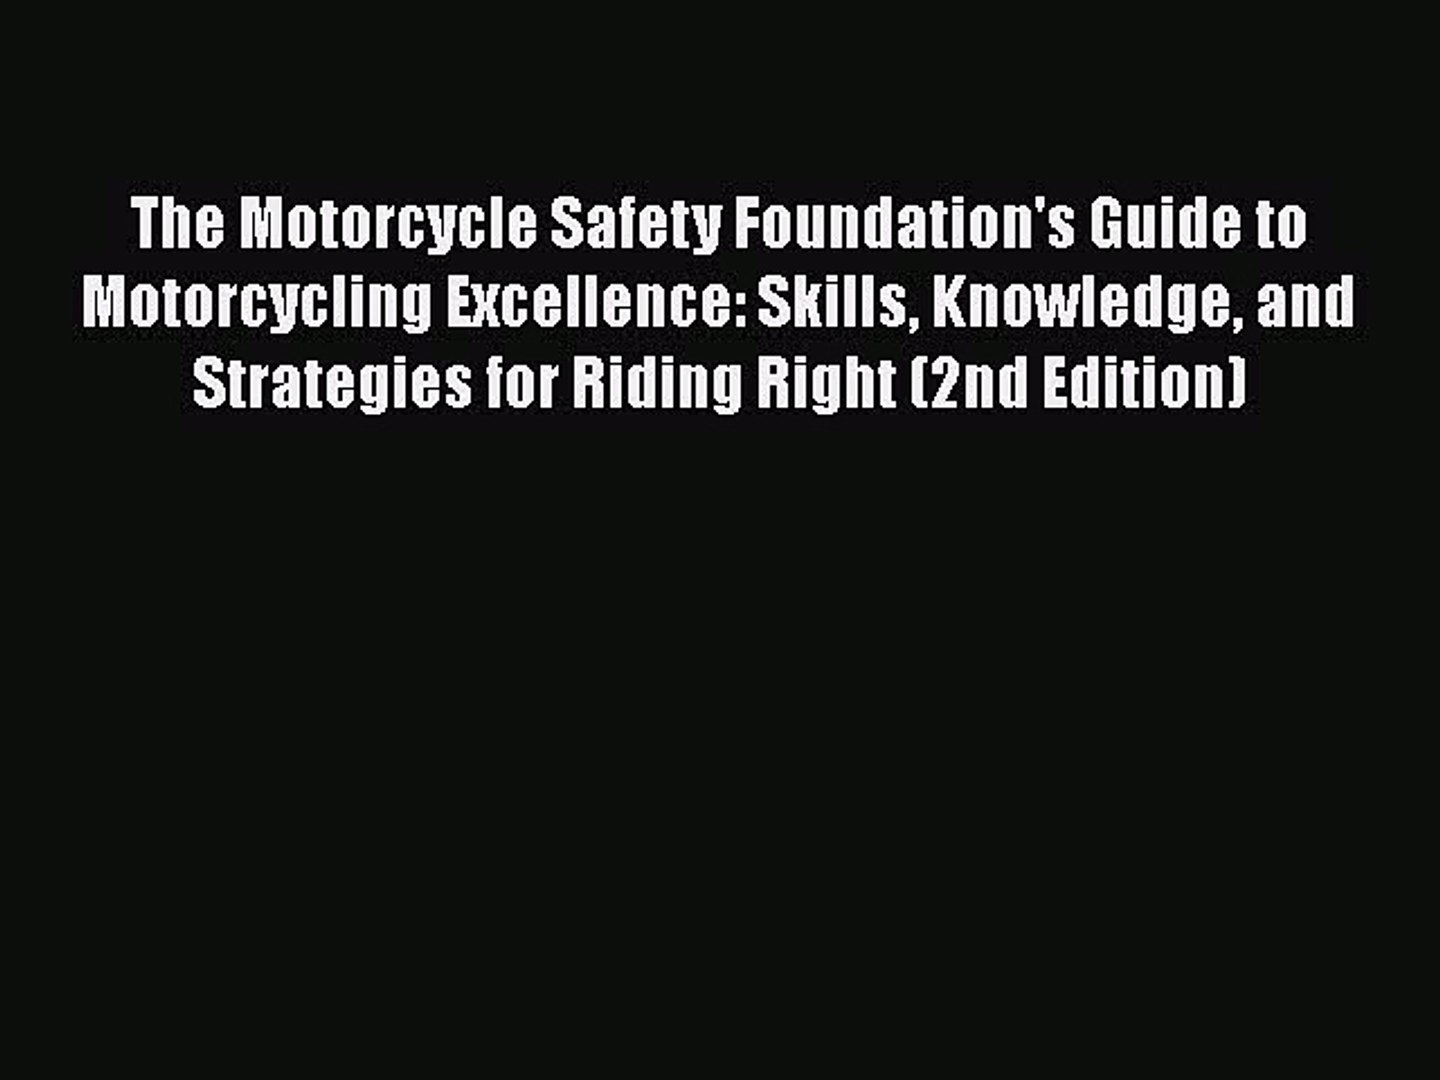 Knowledge Skills and Strategies for Riding Right The Motorcycle Safety Foundations Guide to Motorcycling Excellence